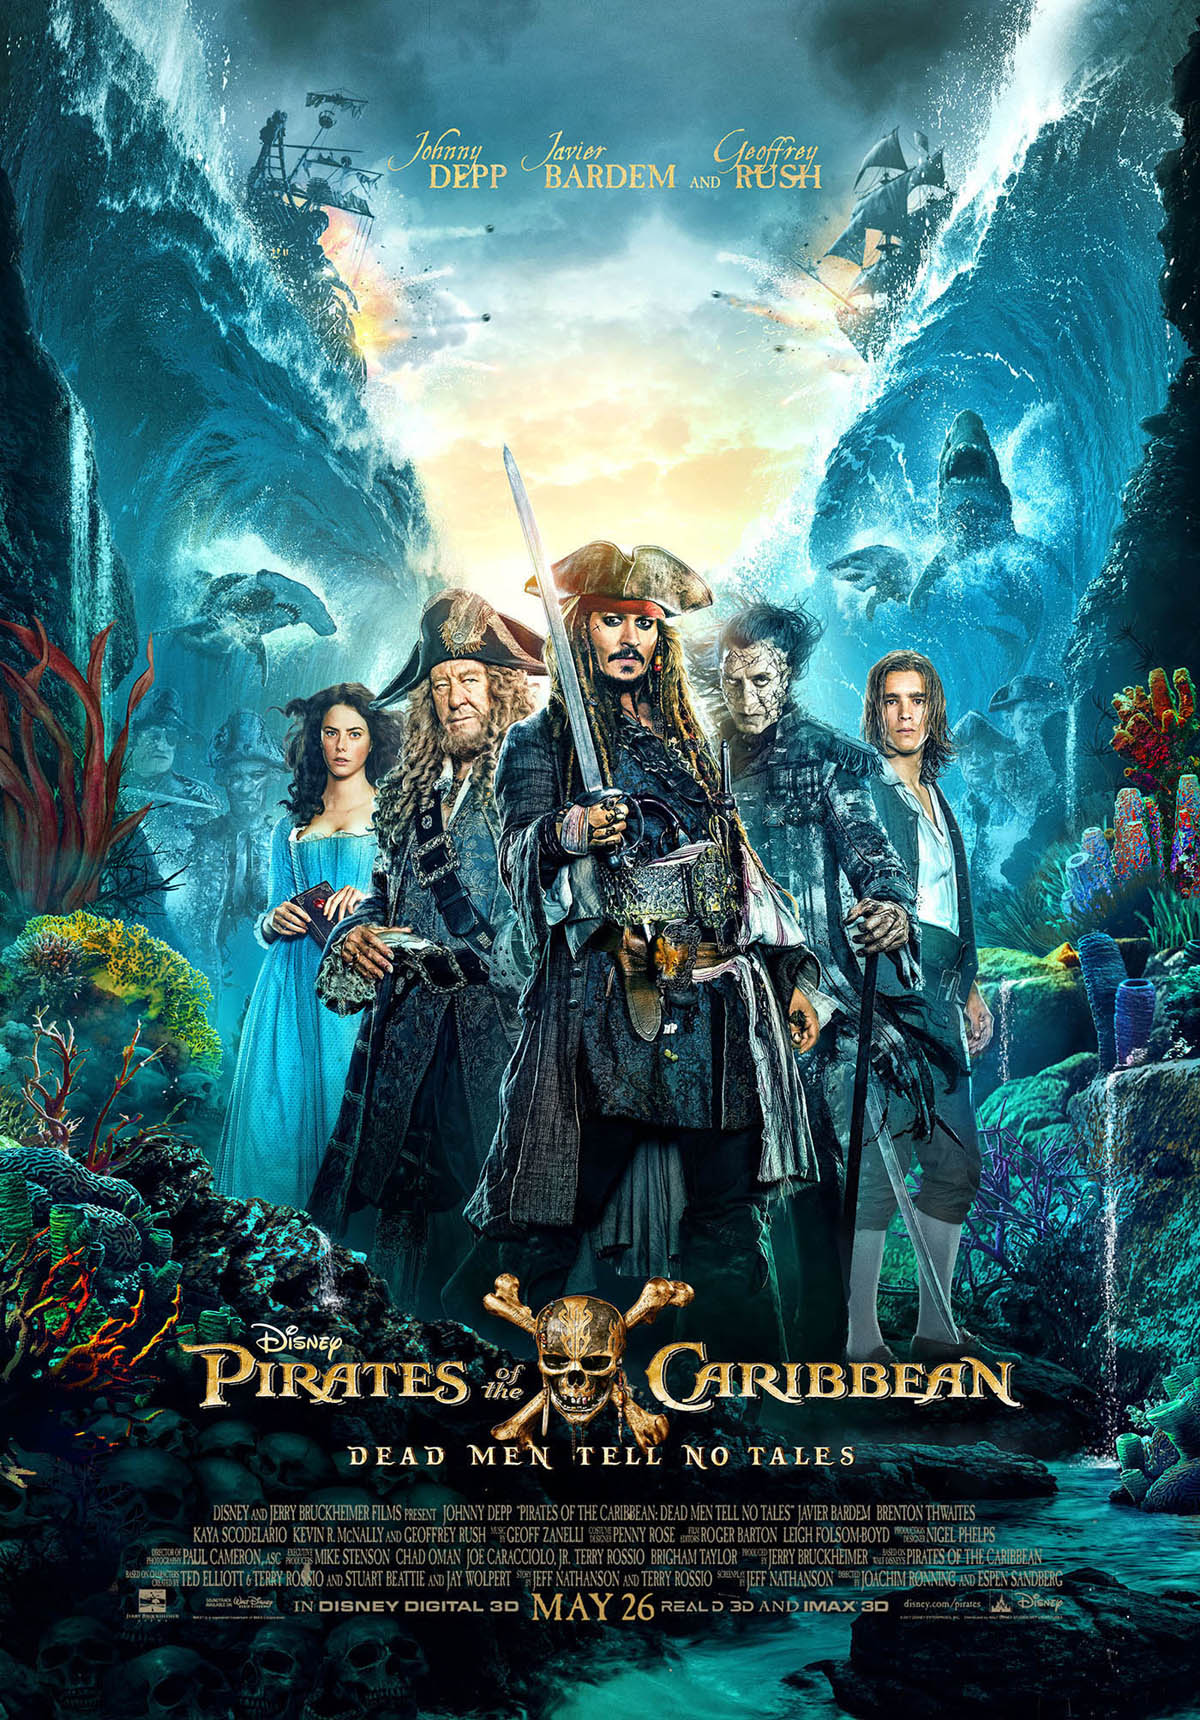 movie poster designs ideas pirates of caribbean